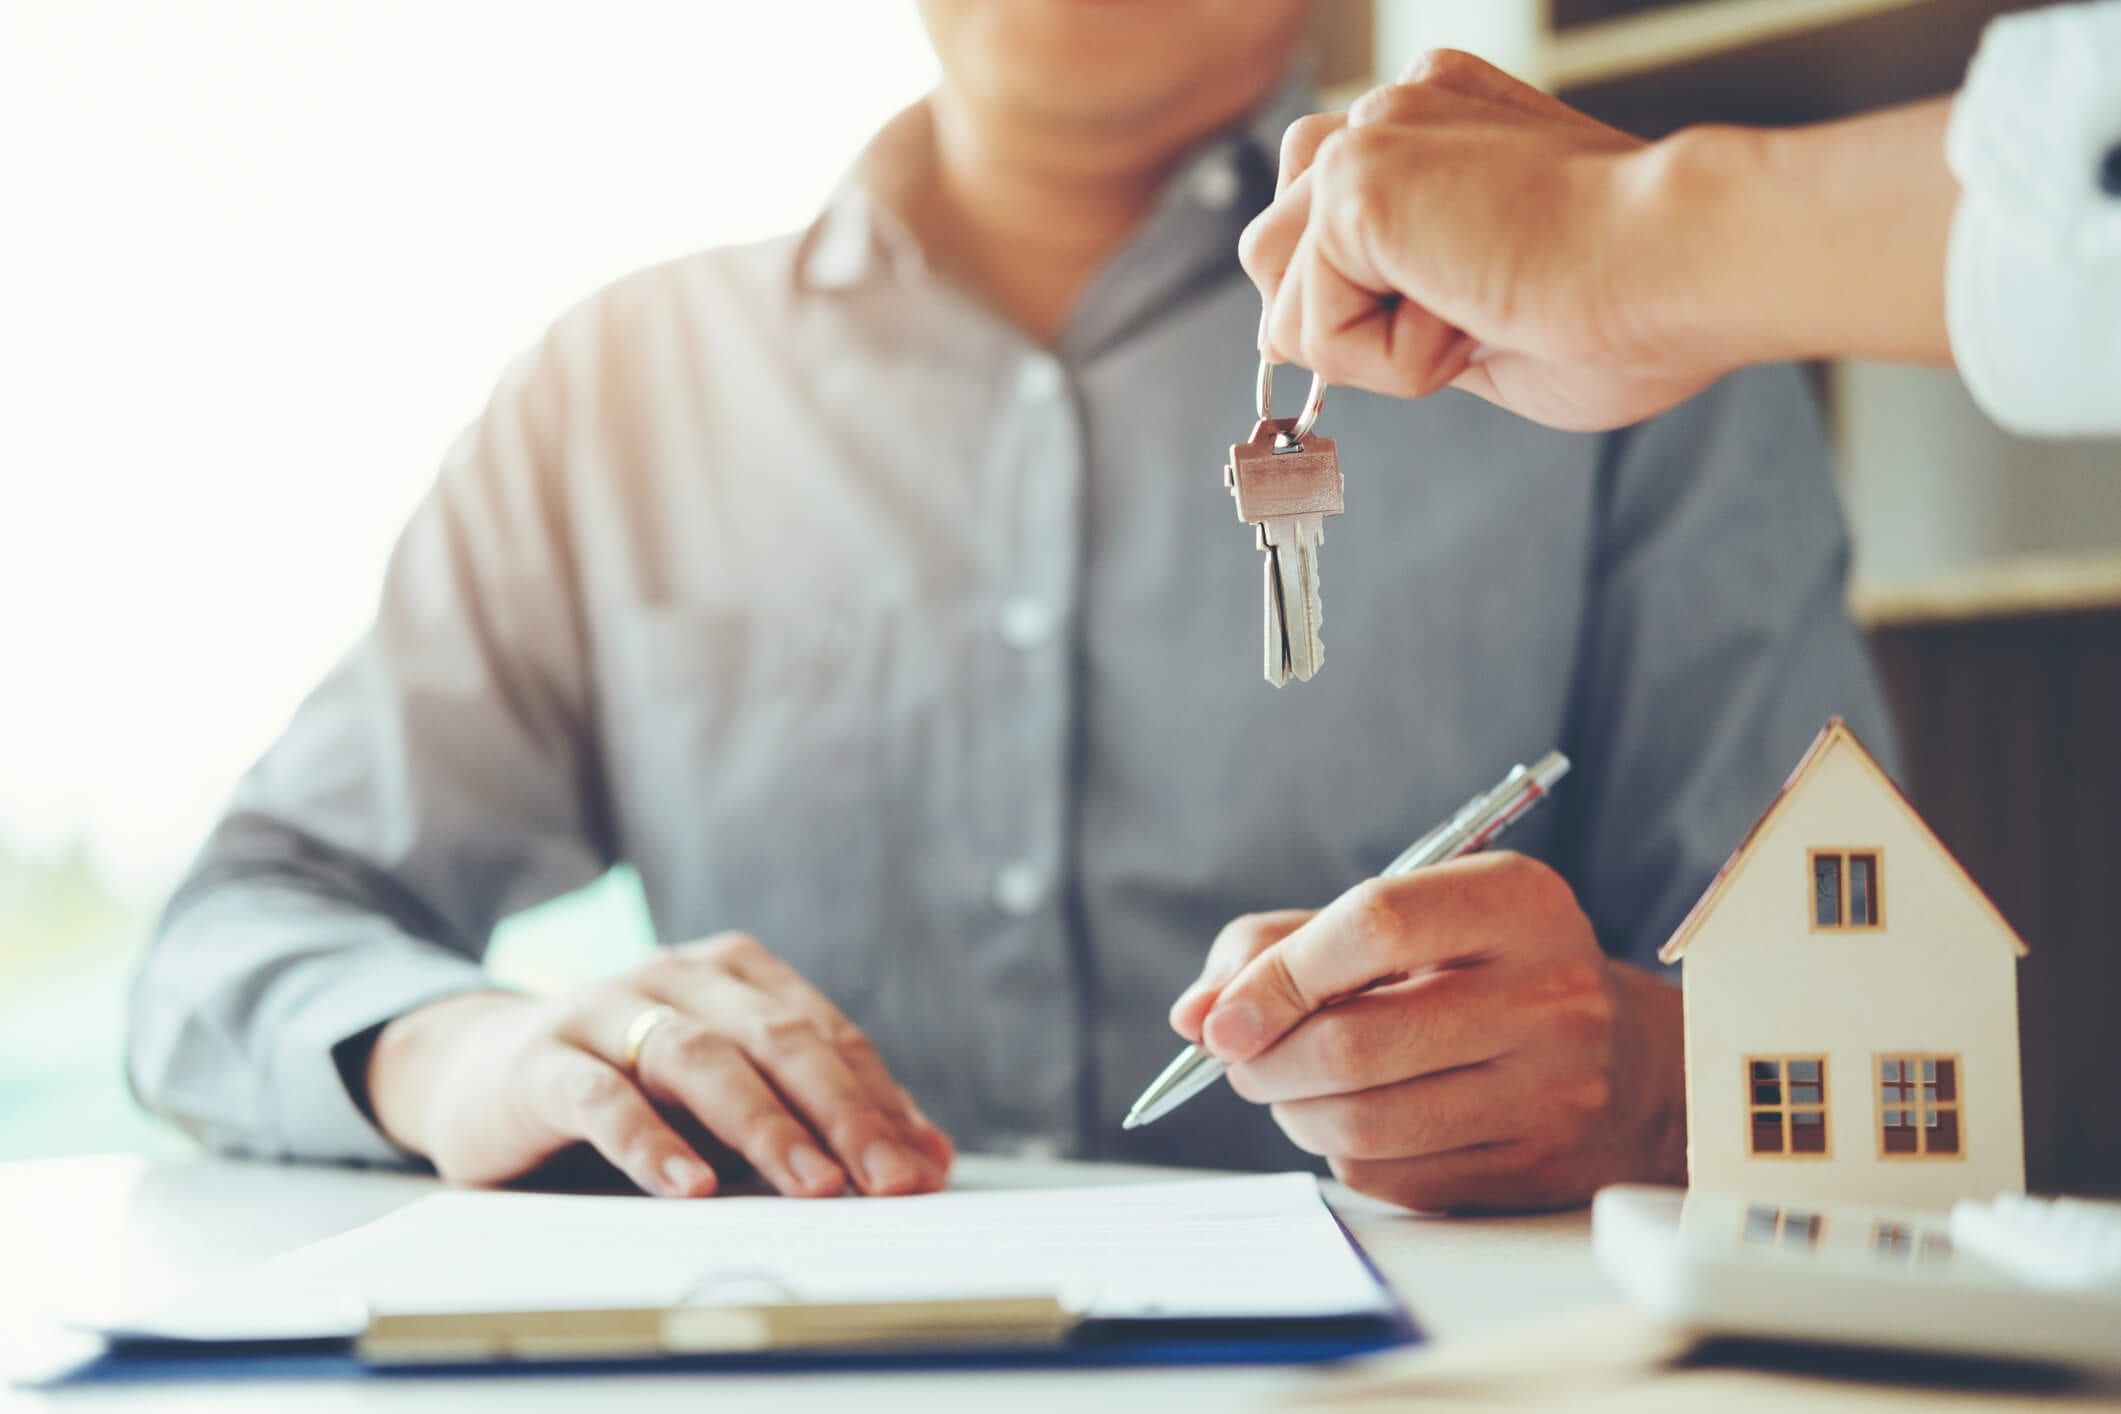 Estate Agent handing over the keys to the new homeowner that is signing housing documentation